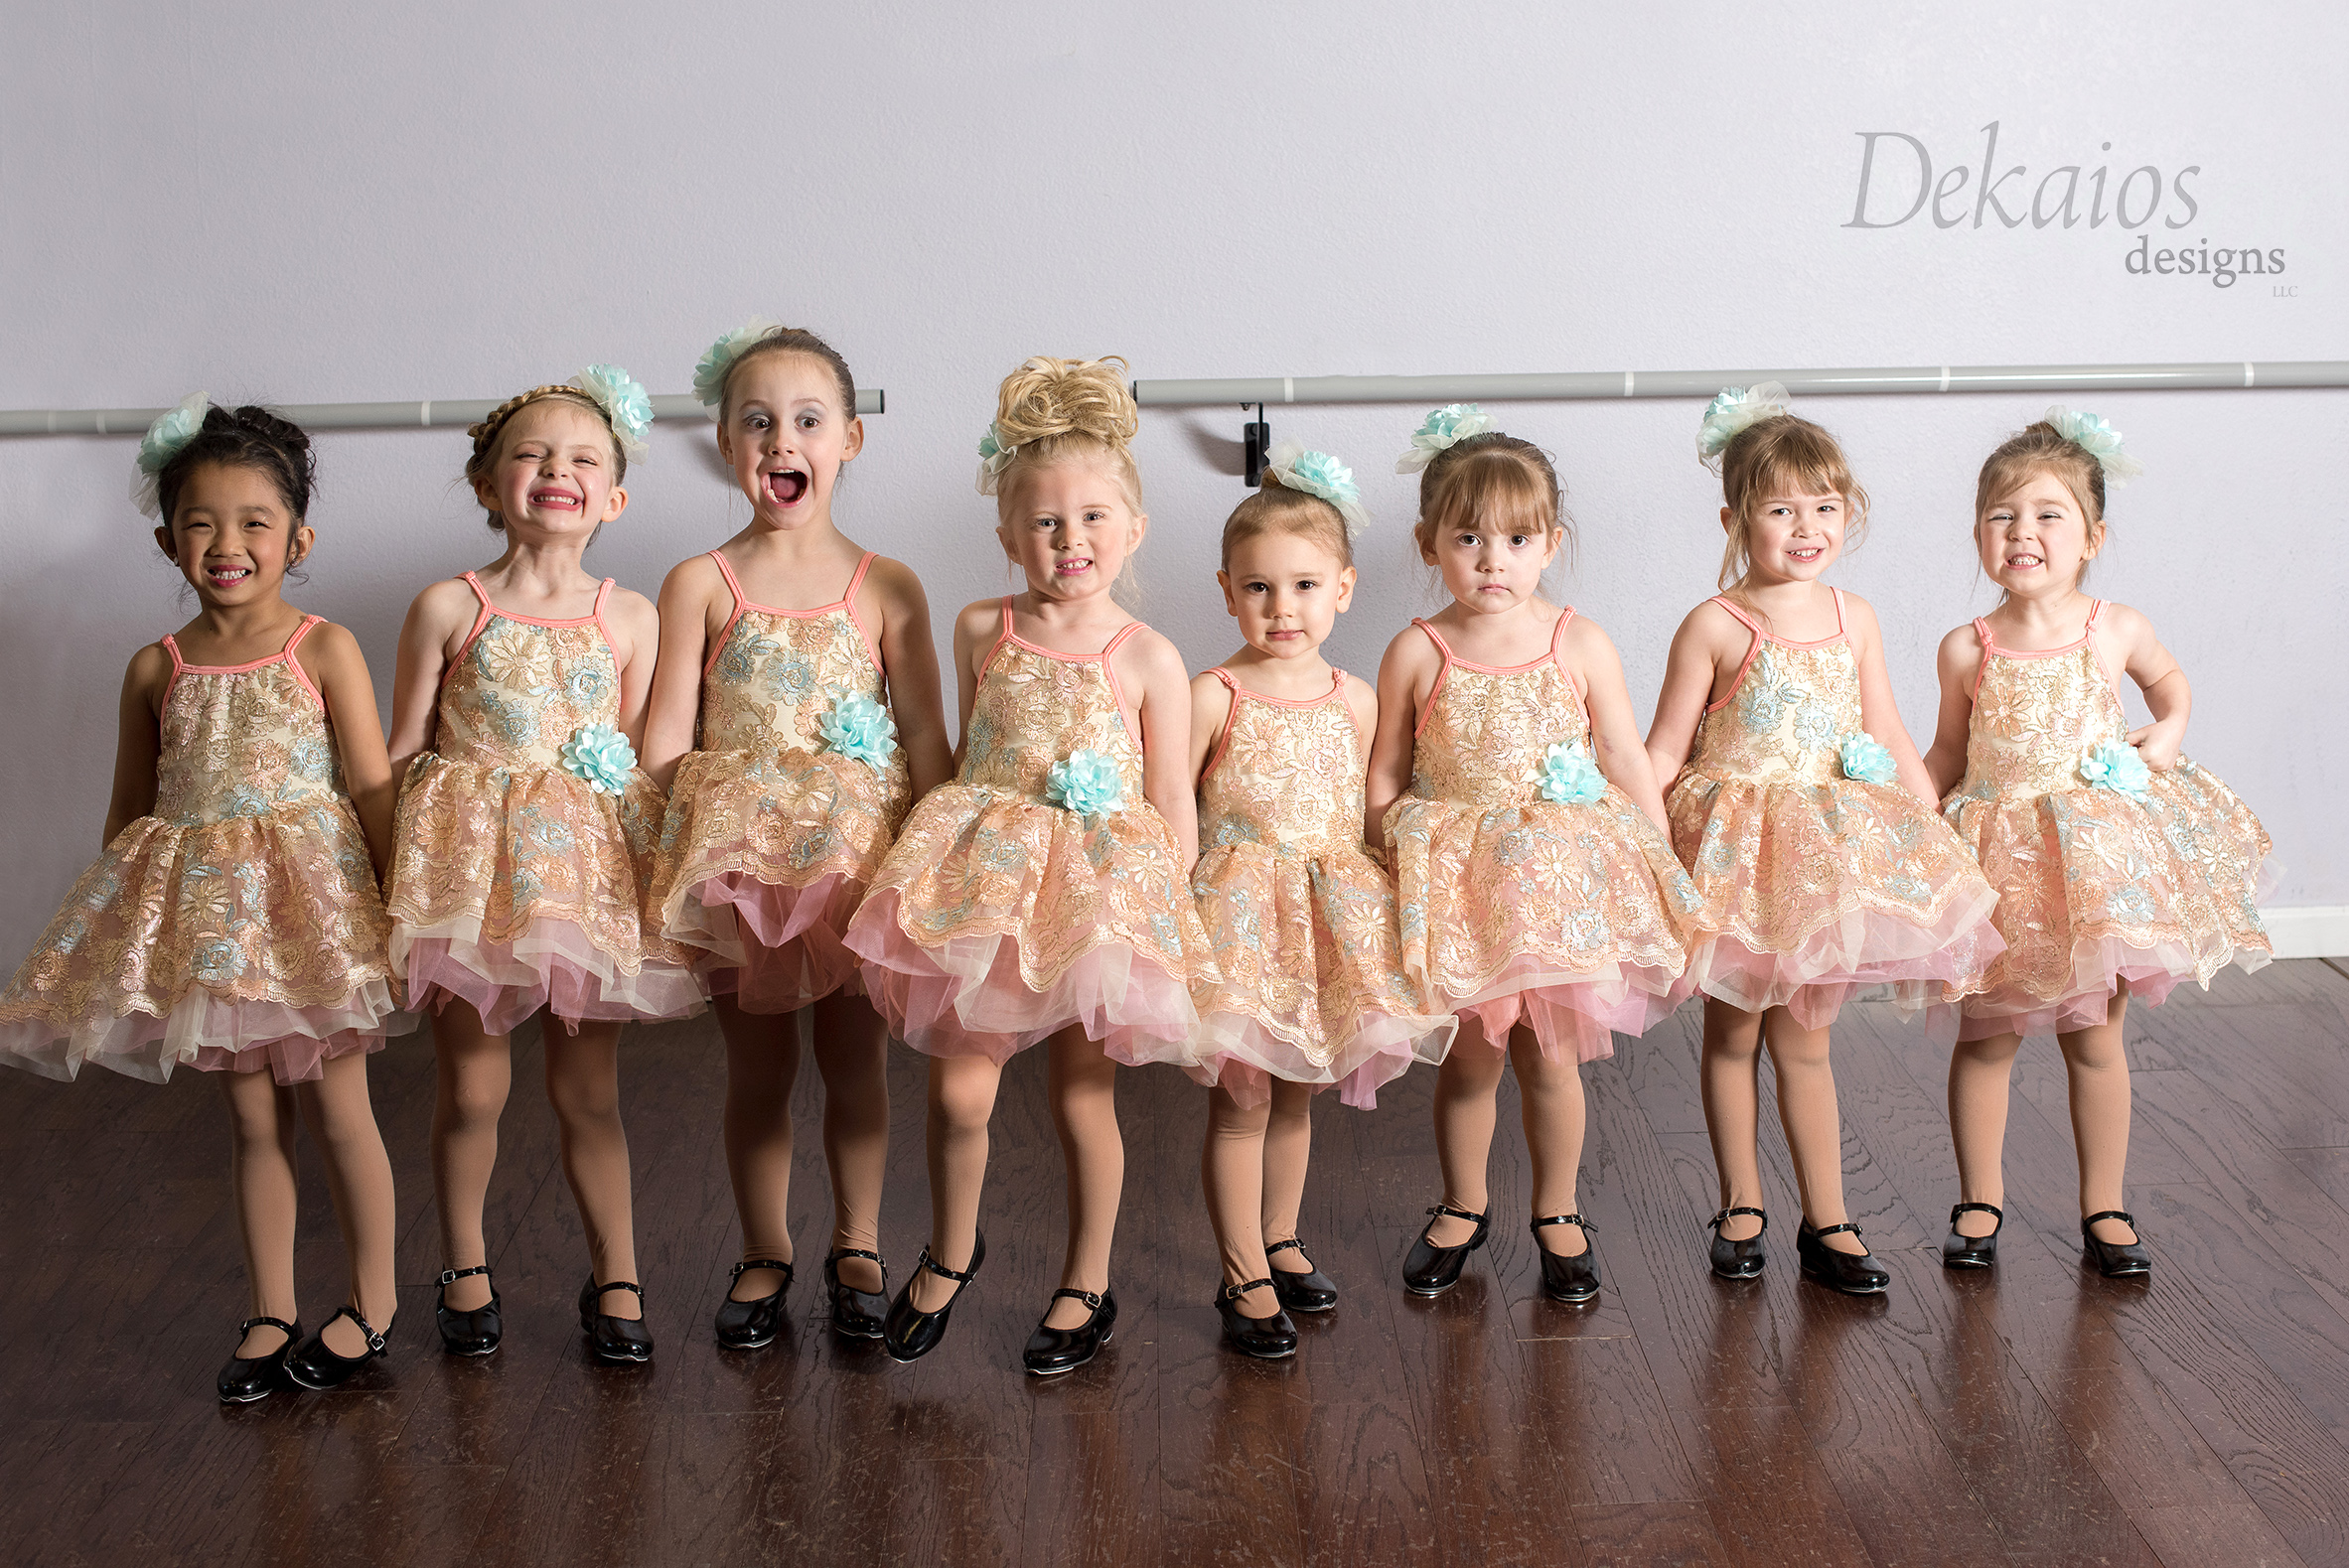 We photographed all the dancing cuties at Best Foot Forward Dance Co.